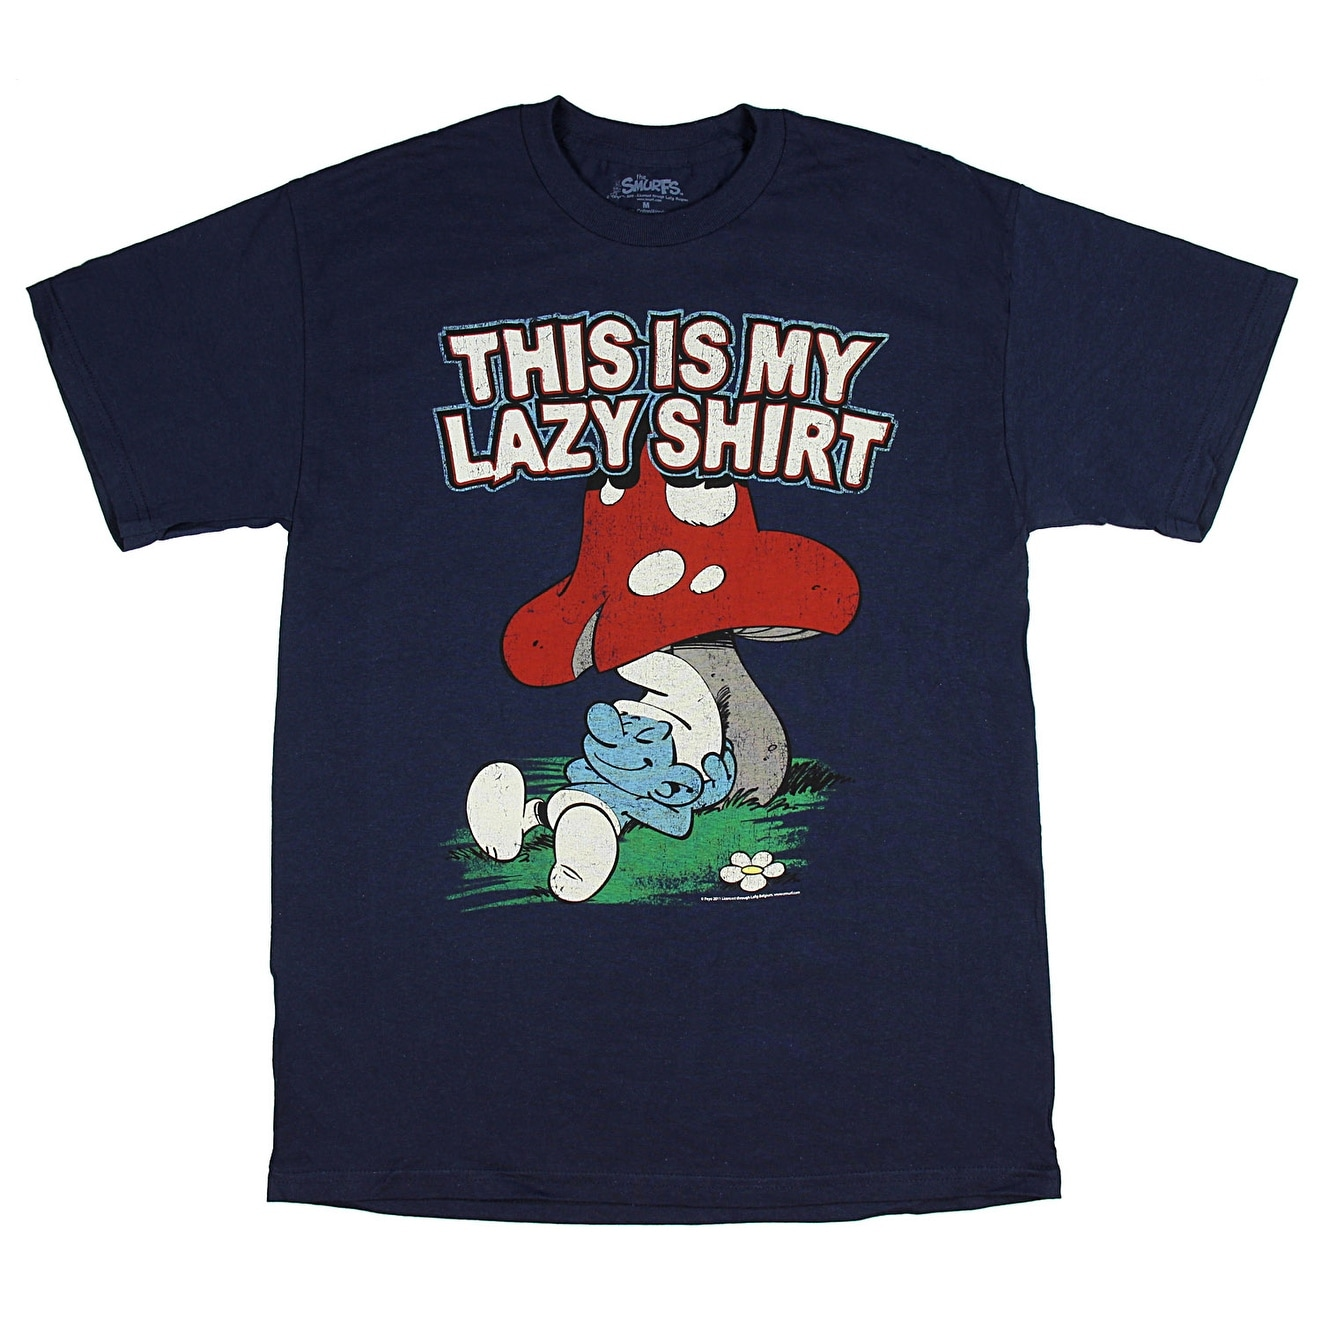 433afcdc4 Shop The Smurfs This is My Lazy Shirt Men's T-Shirt - On Sale - Free  Shipping On Orders Over $45 - Overstock - 21504875